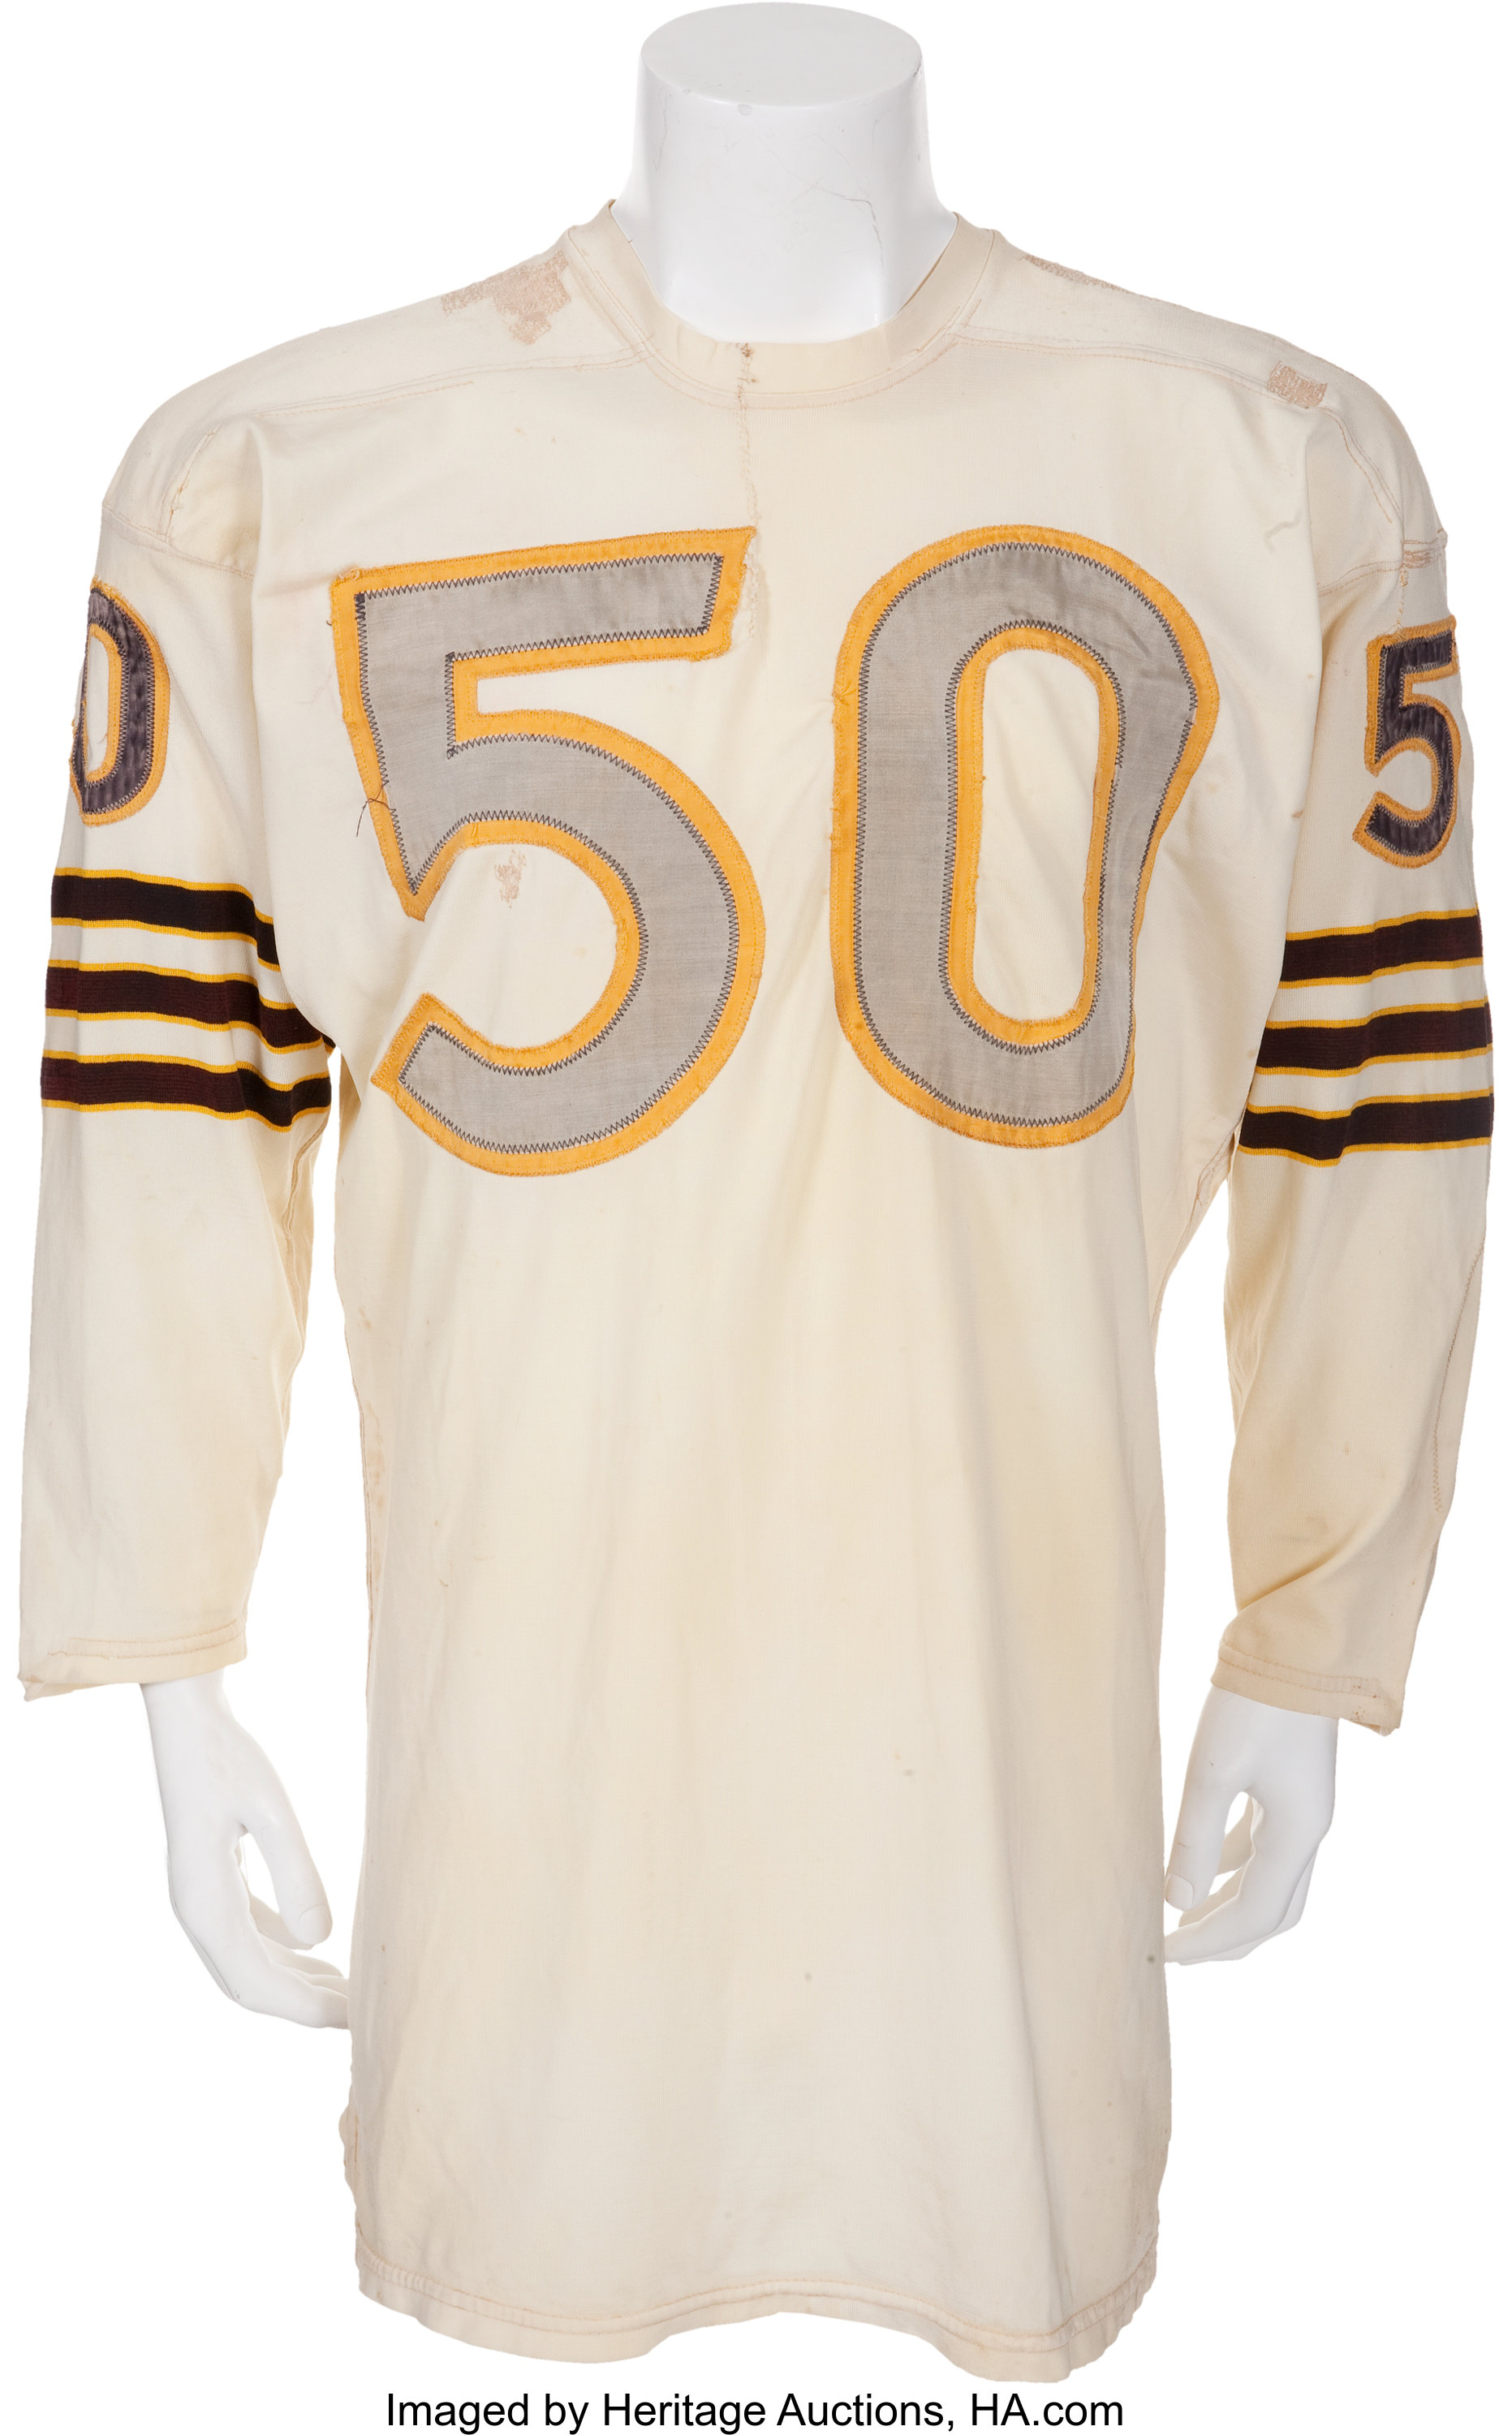 1960 Jim Otto Game Worn Oakland Raiders Rookie Jersey Inaugural Lot 81078 Heritage Auctions